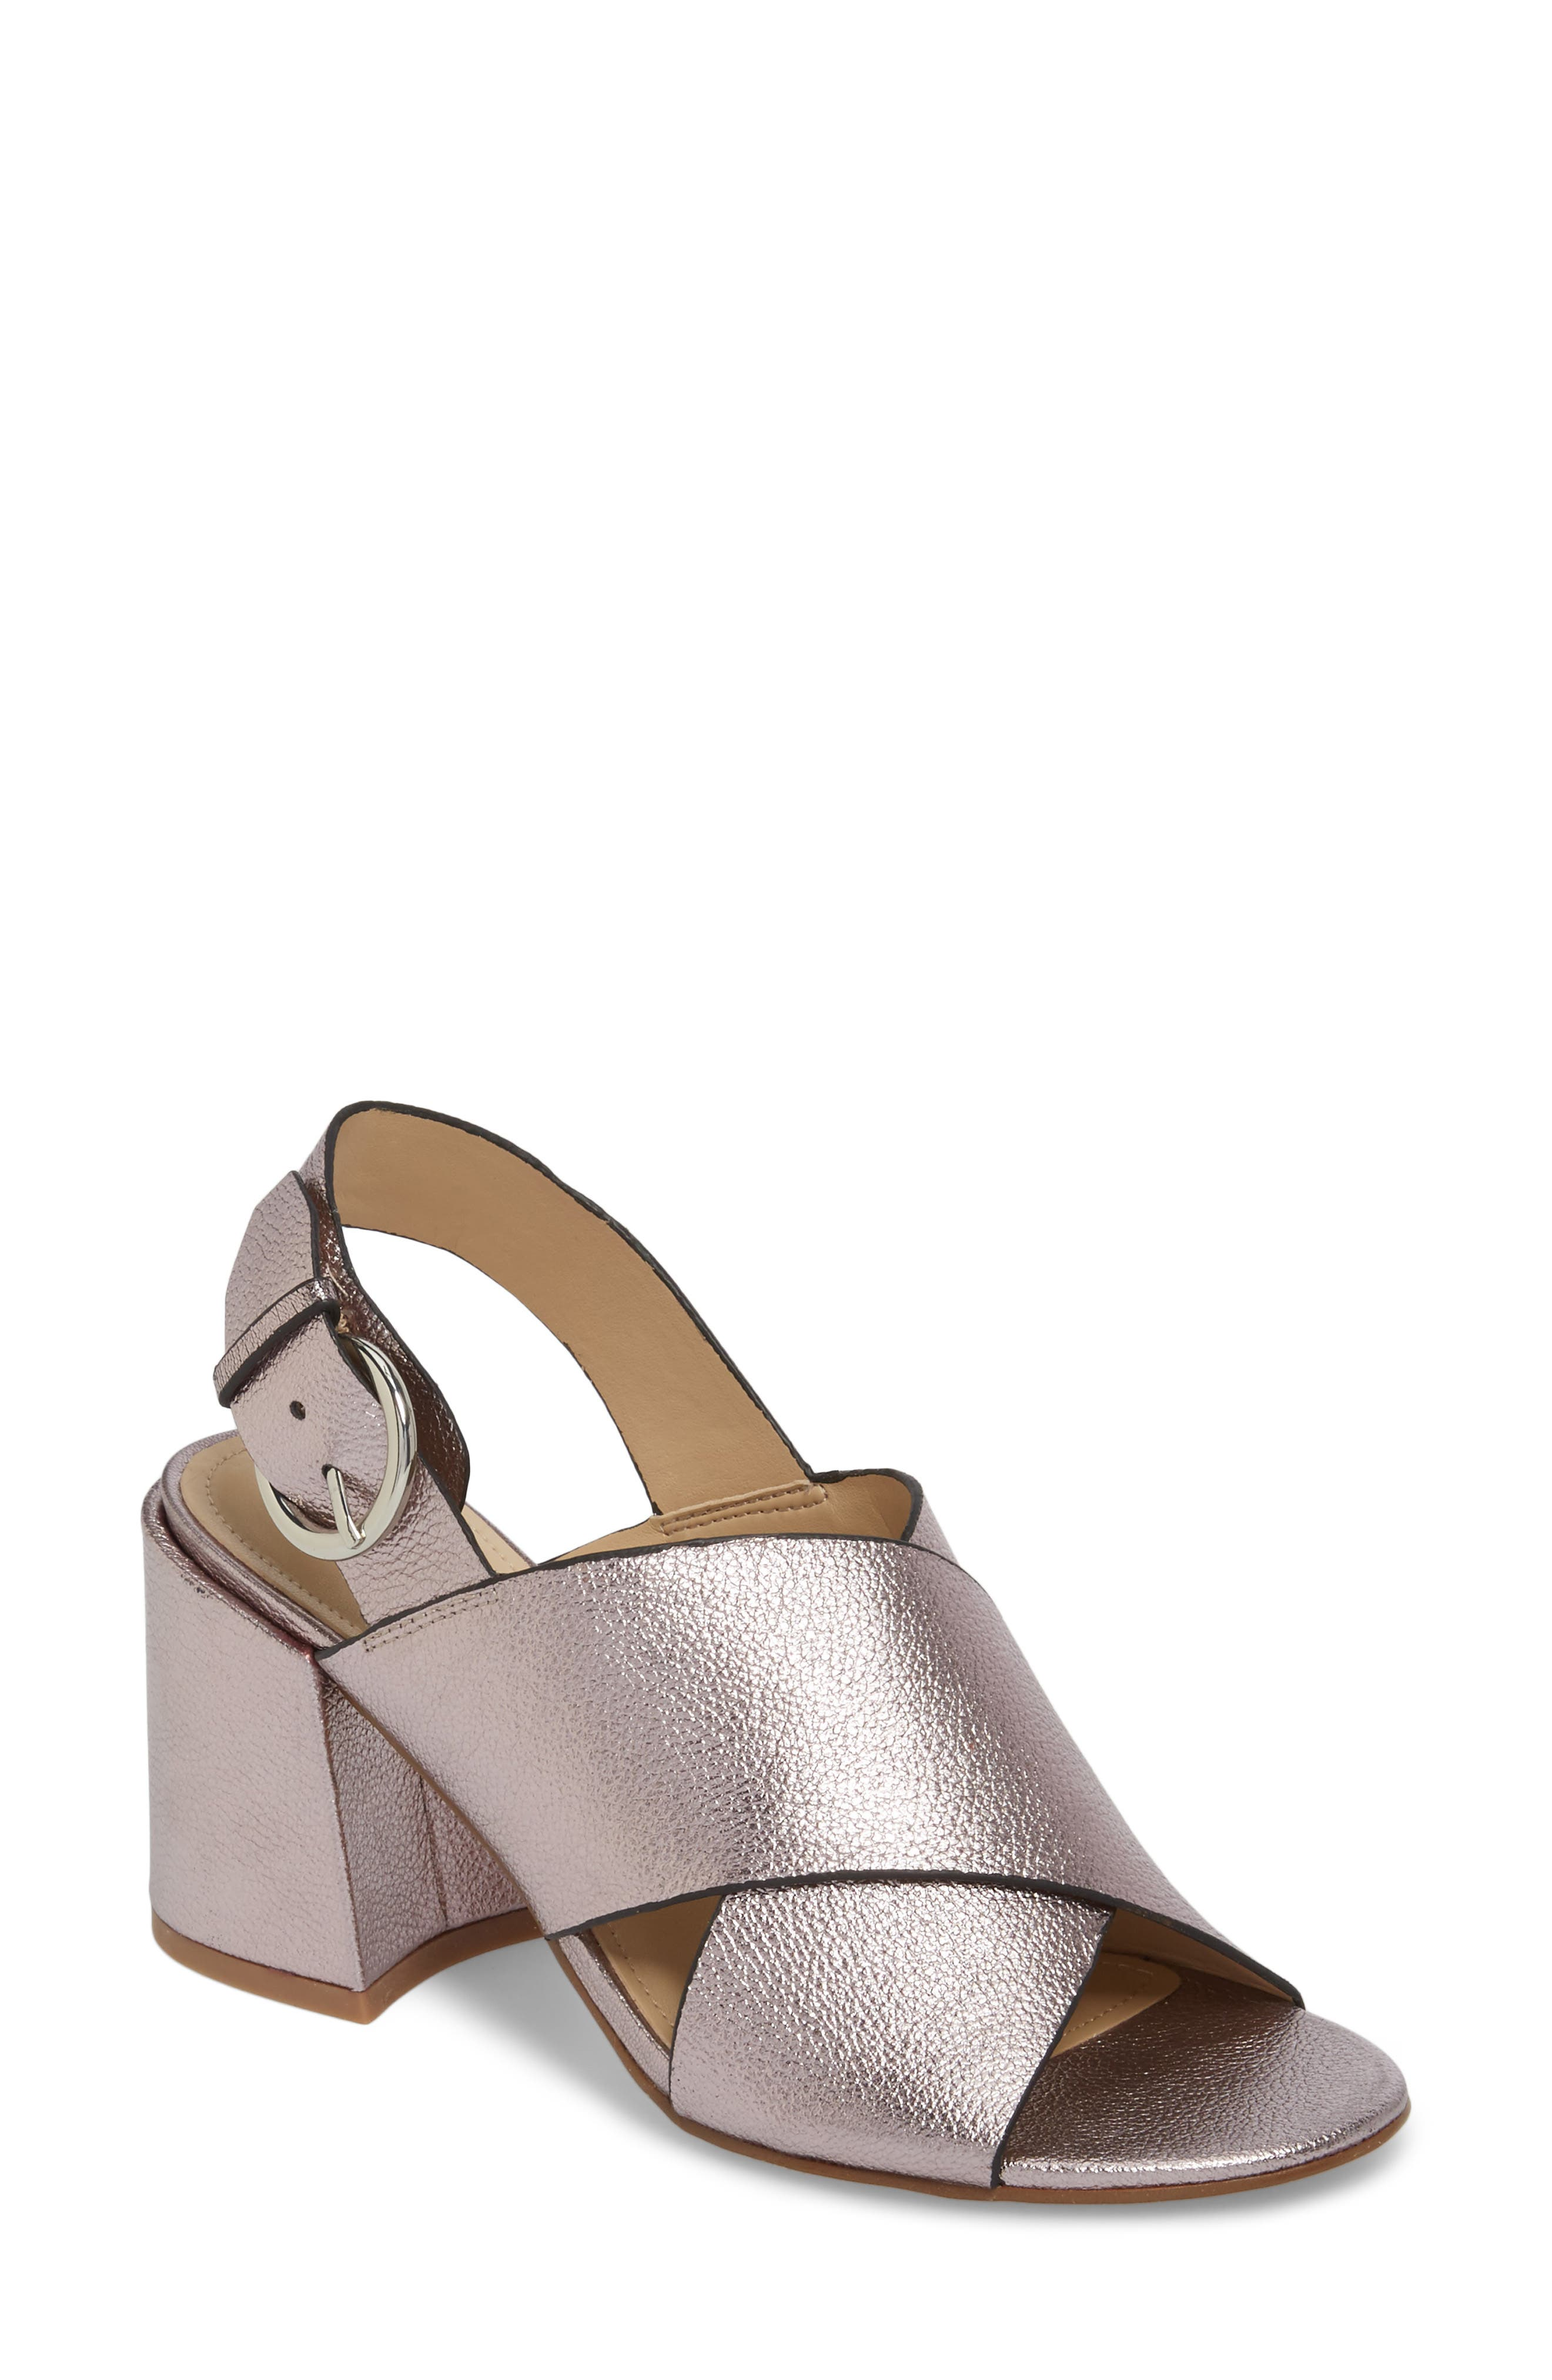 Hocie Slingback Sandal,                             Main thumbnail 1, color,                             Gold Leather